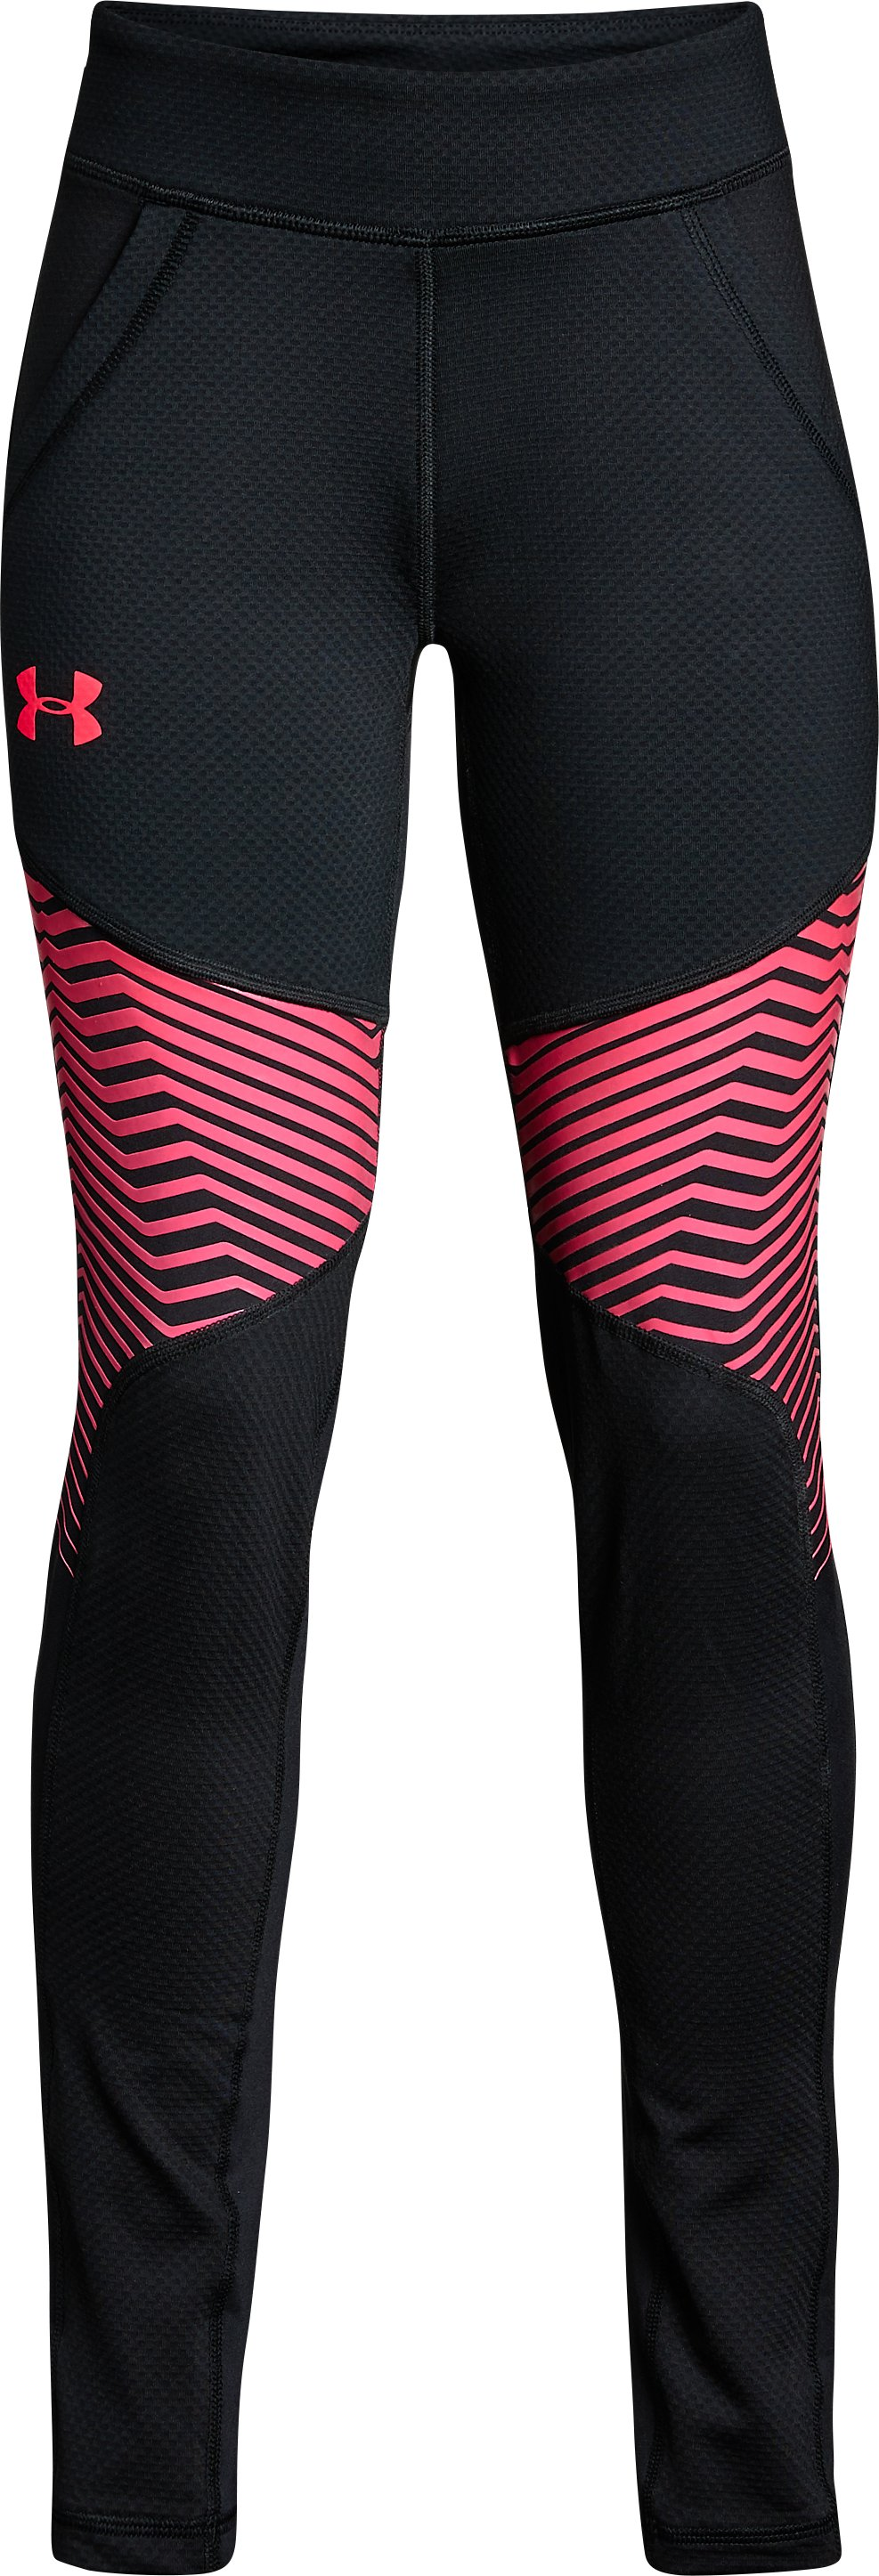 Girls' ColdGear® Reactor Leggings, Black